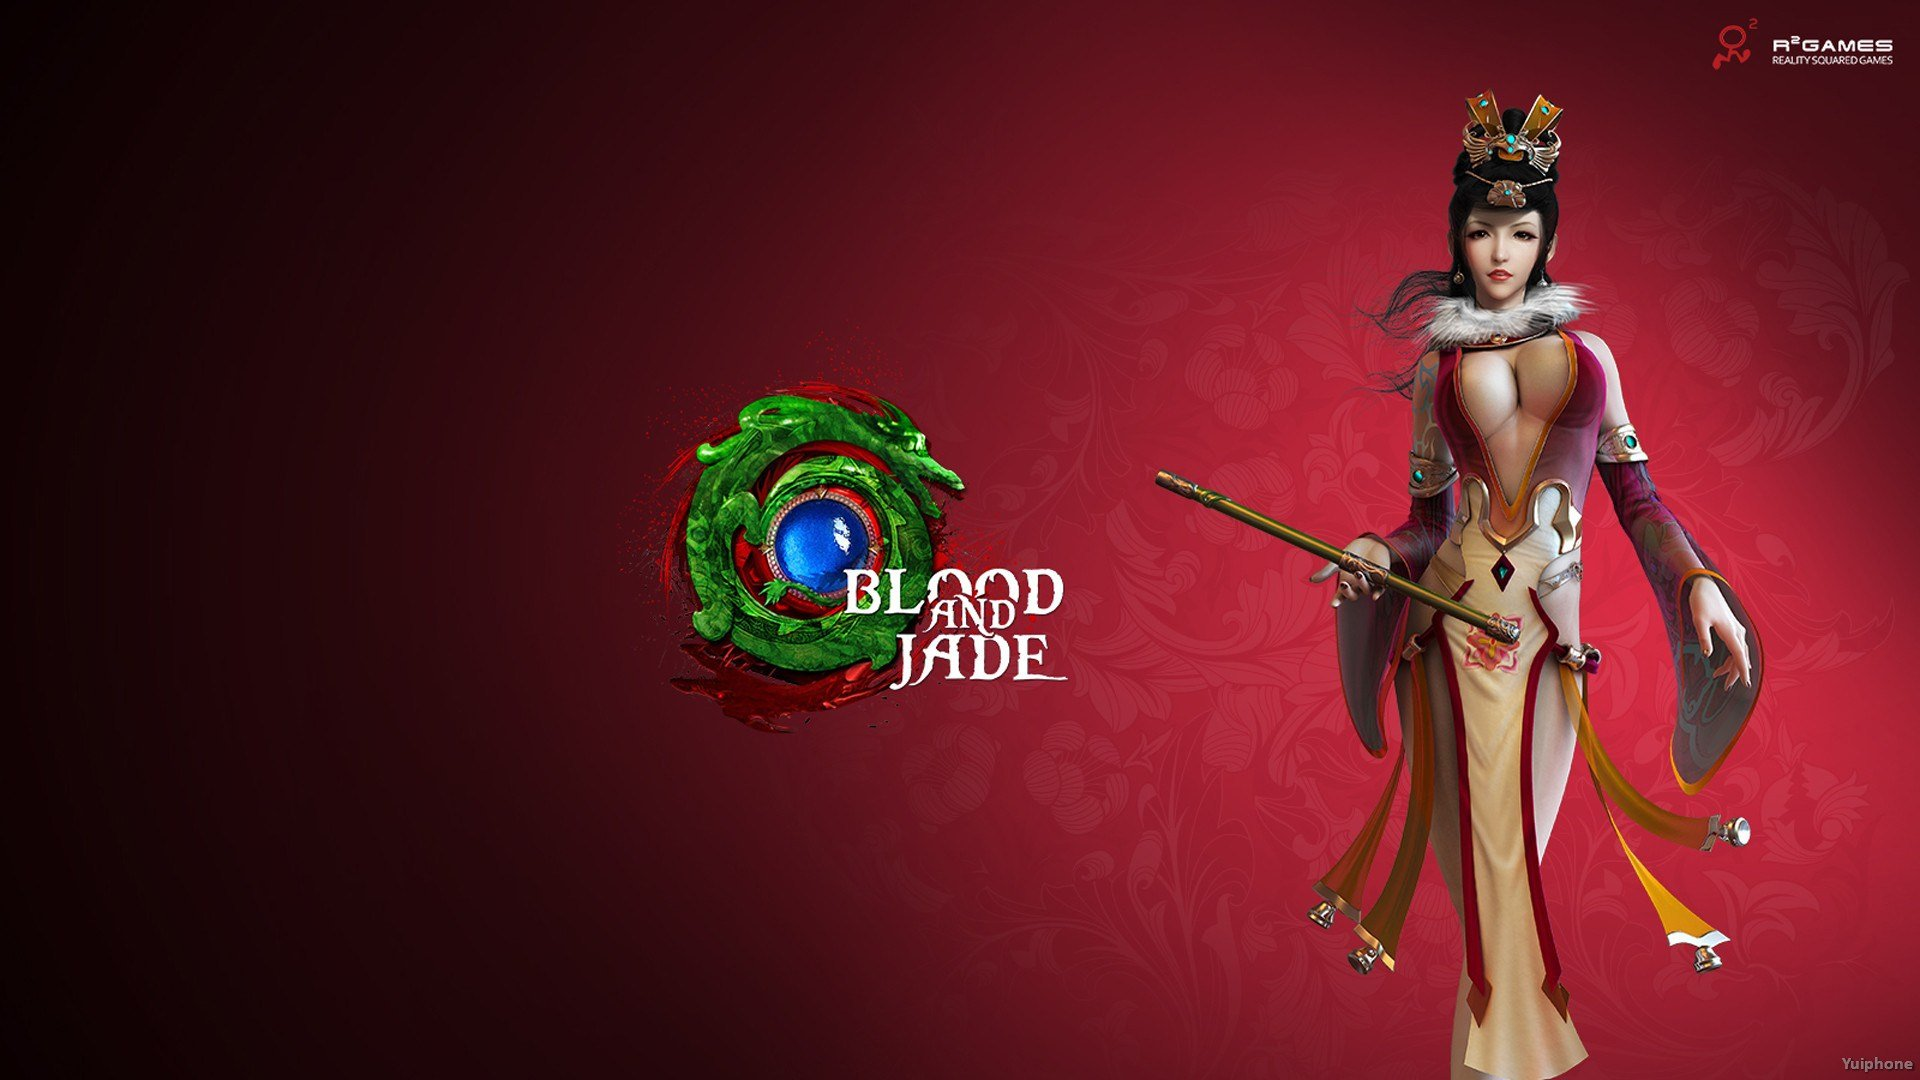 Blood and jade game porn hentia babe